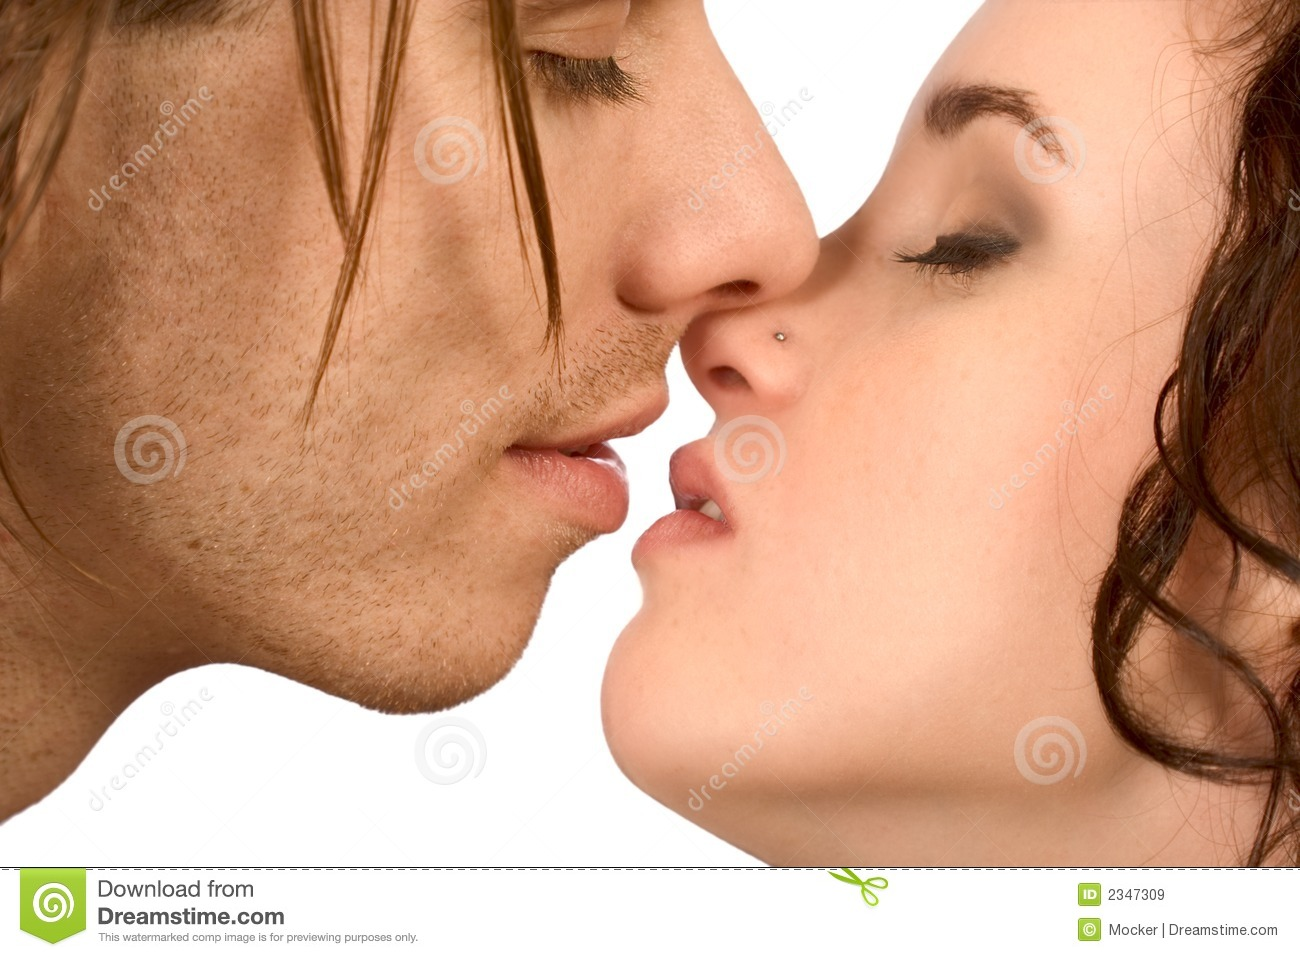 Kissing on the first date in Perth